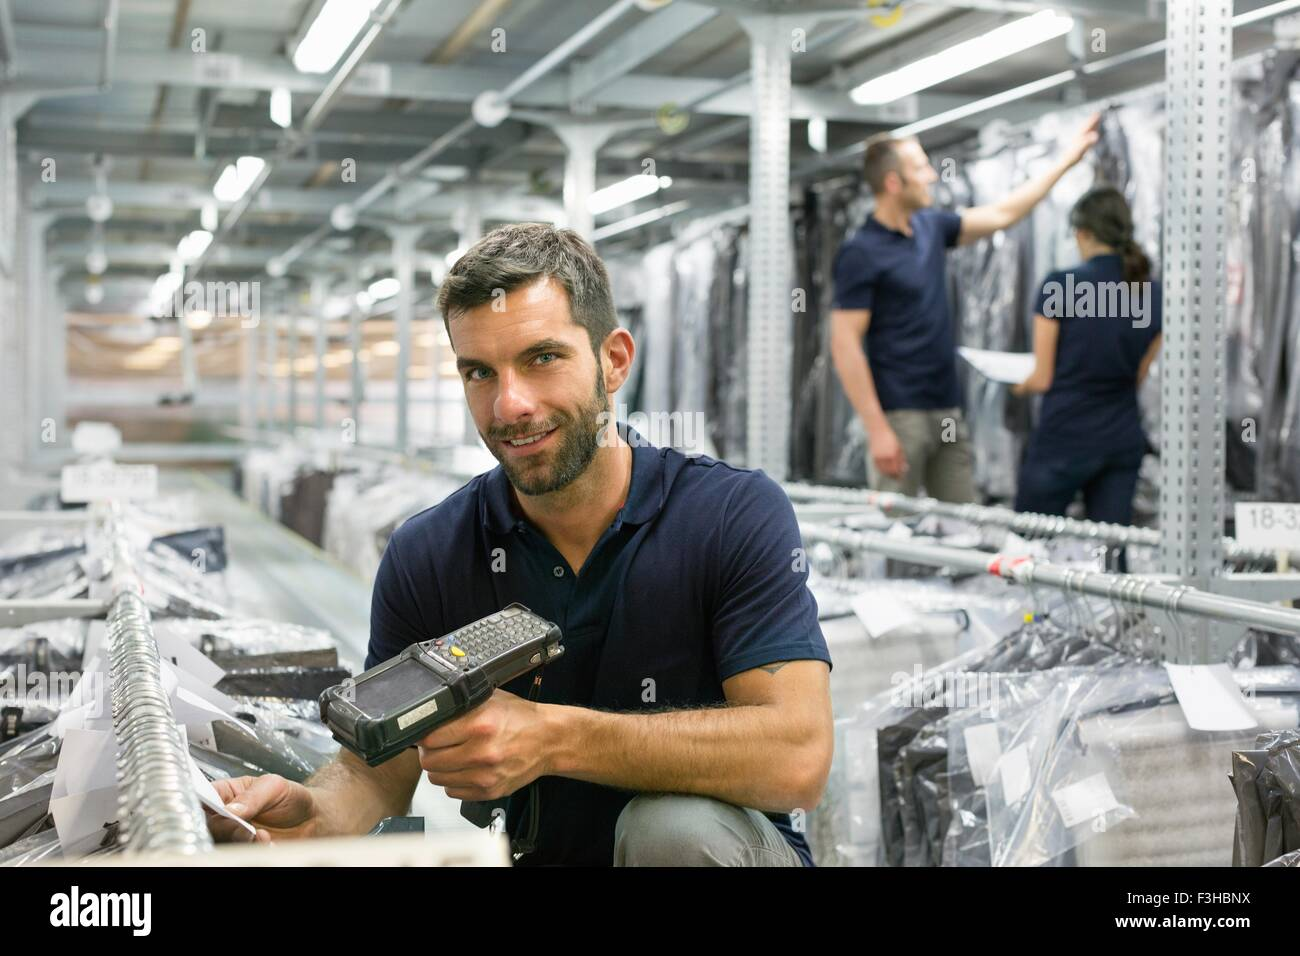 Stock take in warehouse - Stock Image